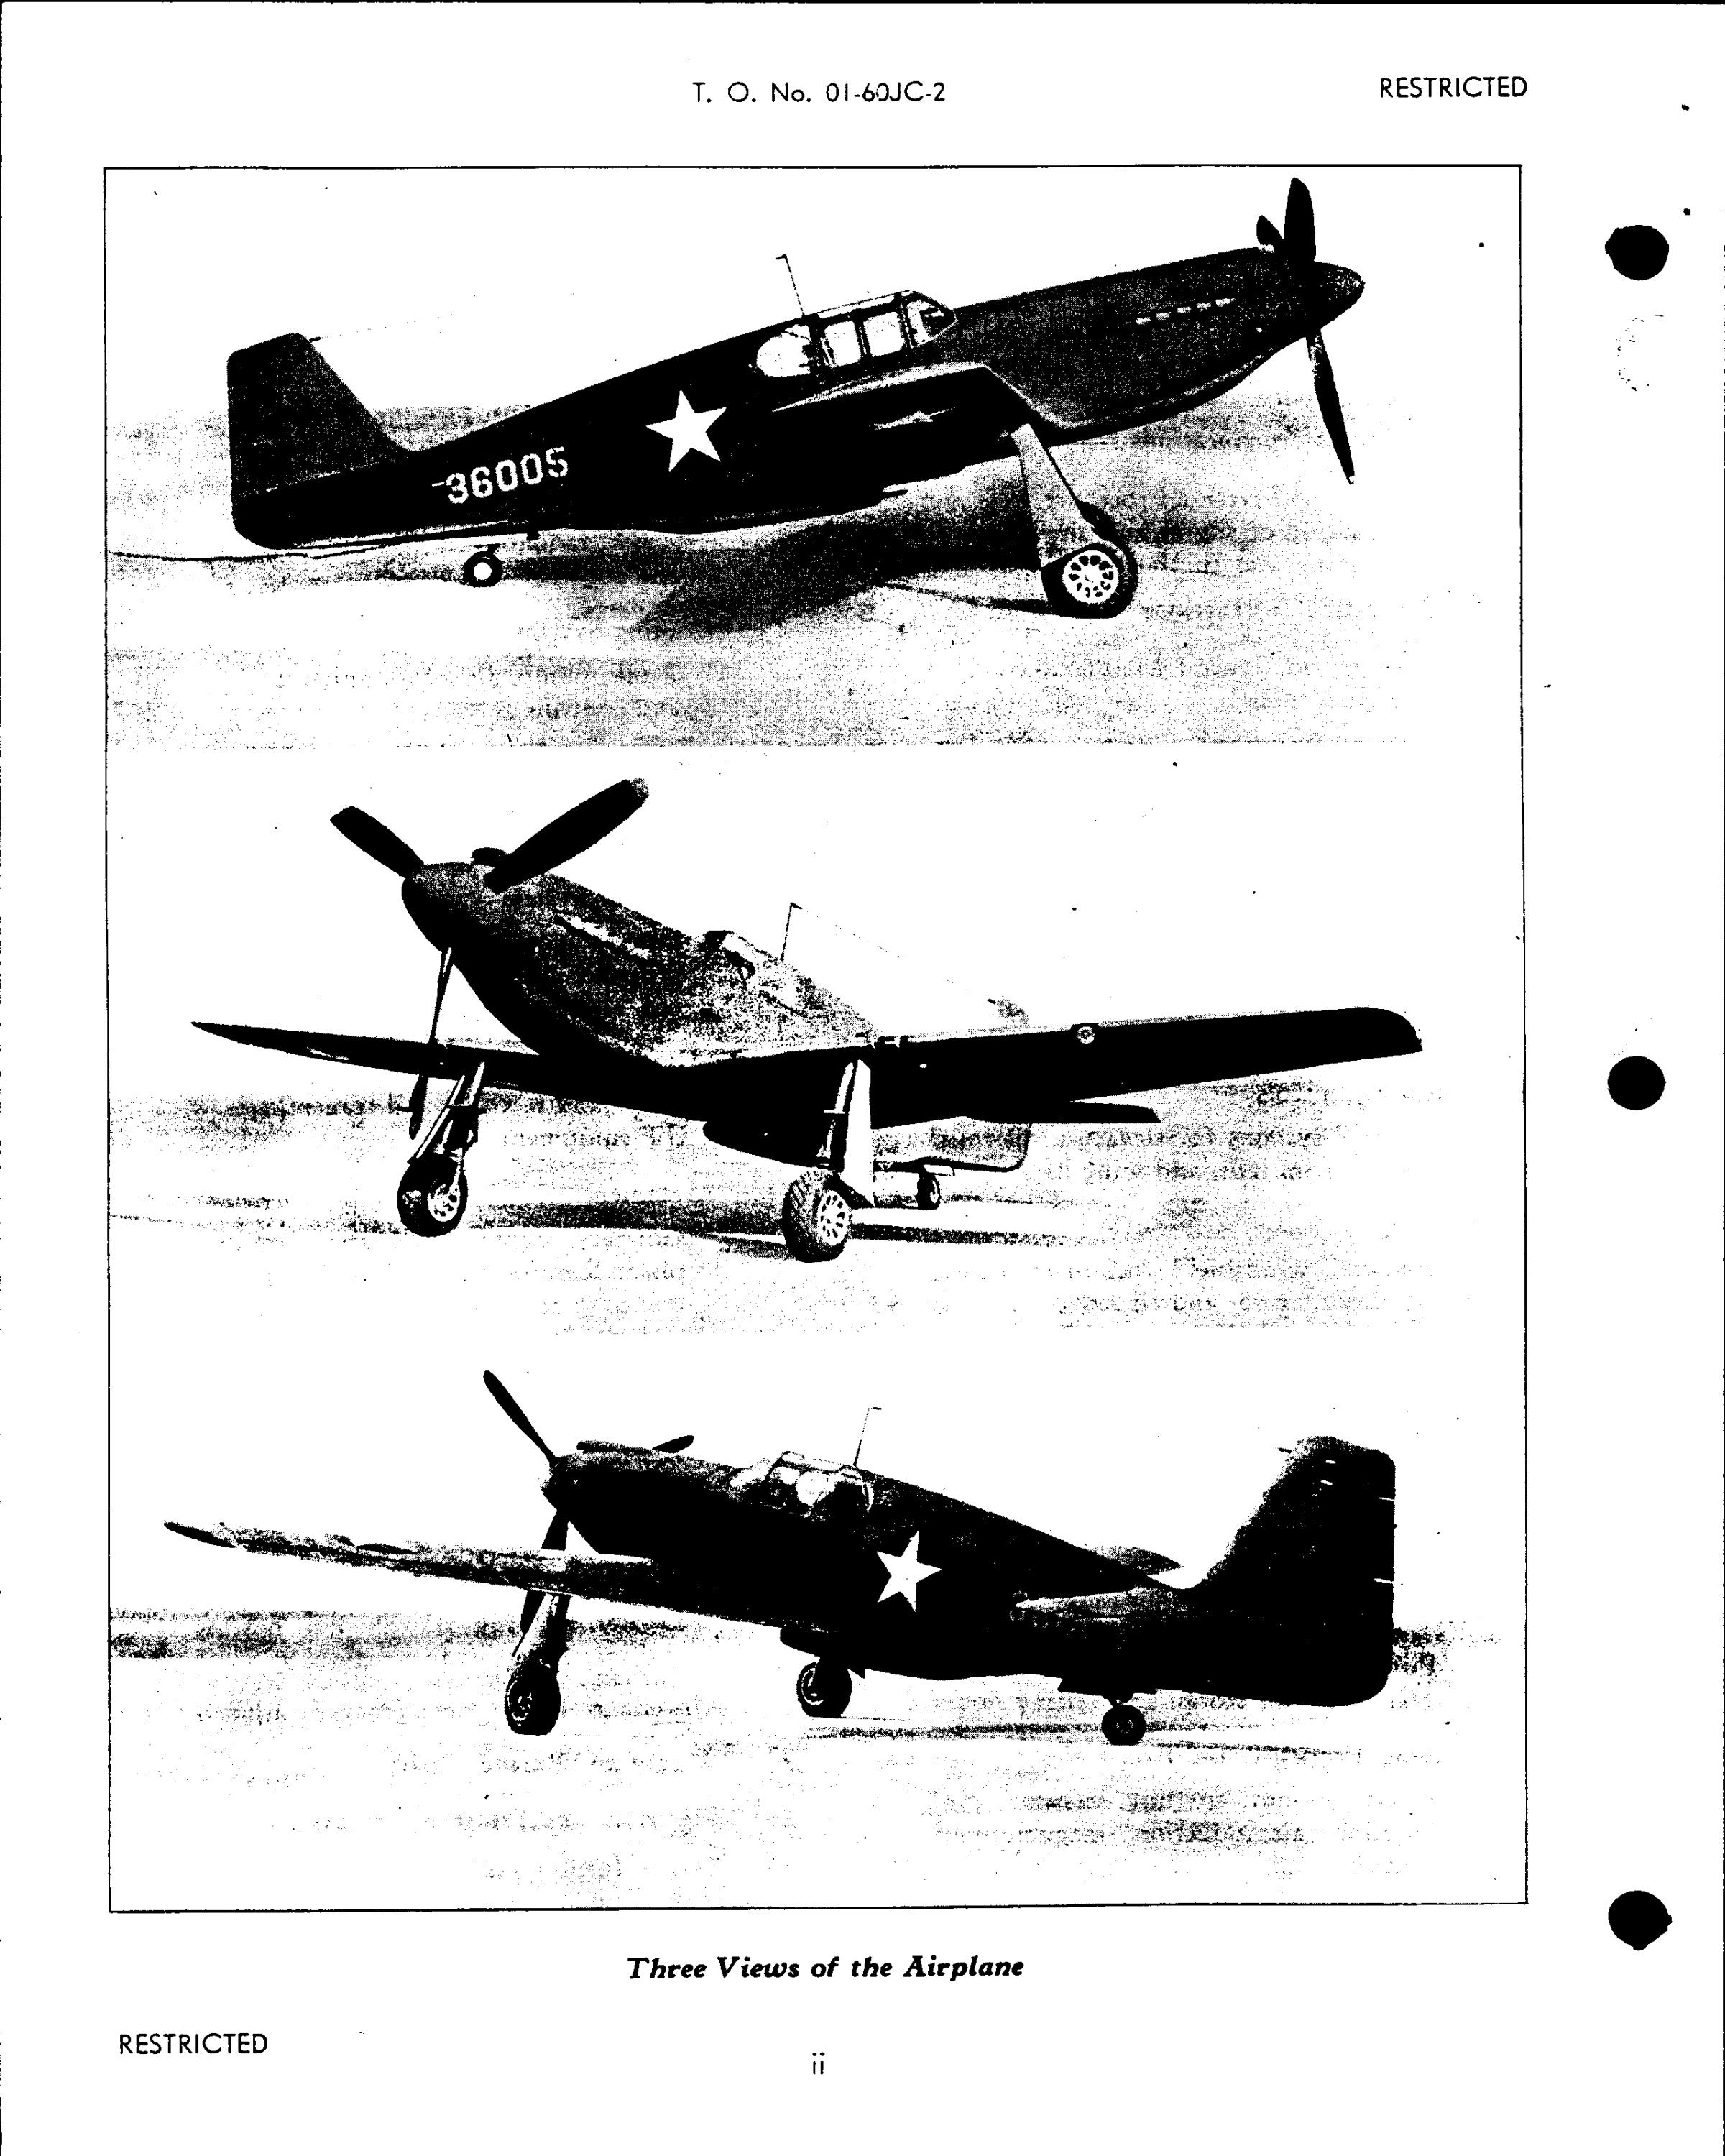 Sample page 4 from AirCorps Library document: Erection and Maintenance Instructions for P-51A Series